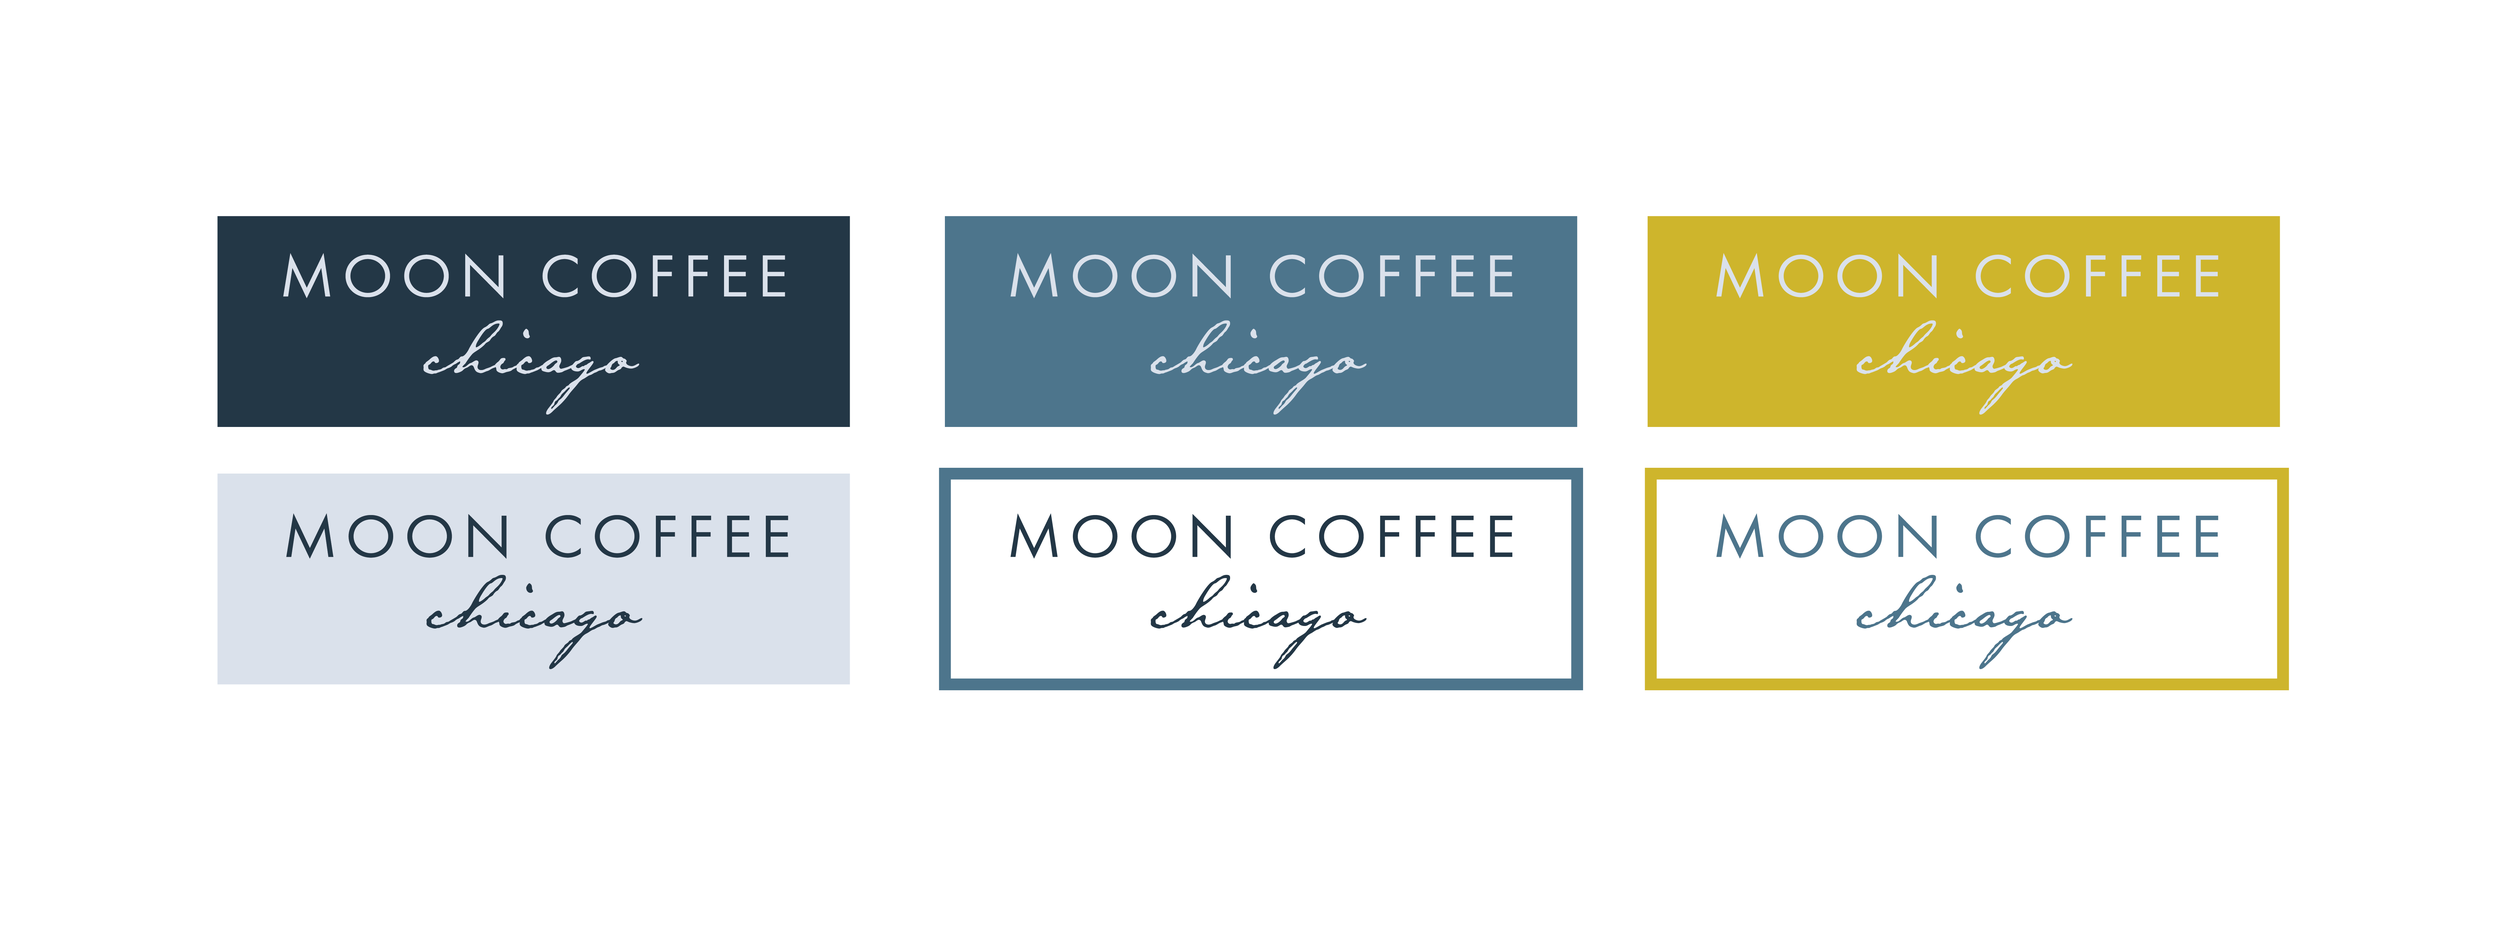 Moon Coffee Brand Guide-07.png